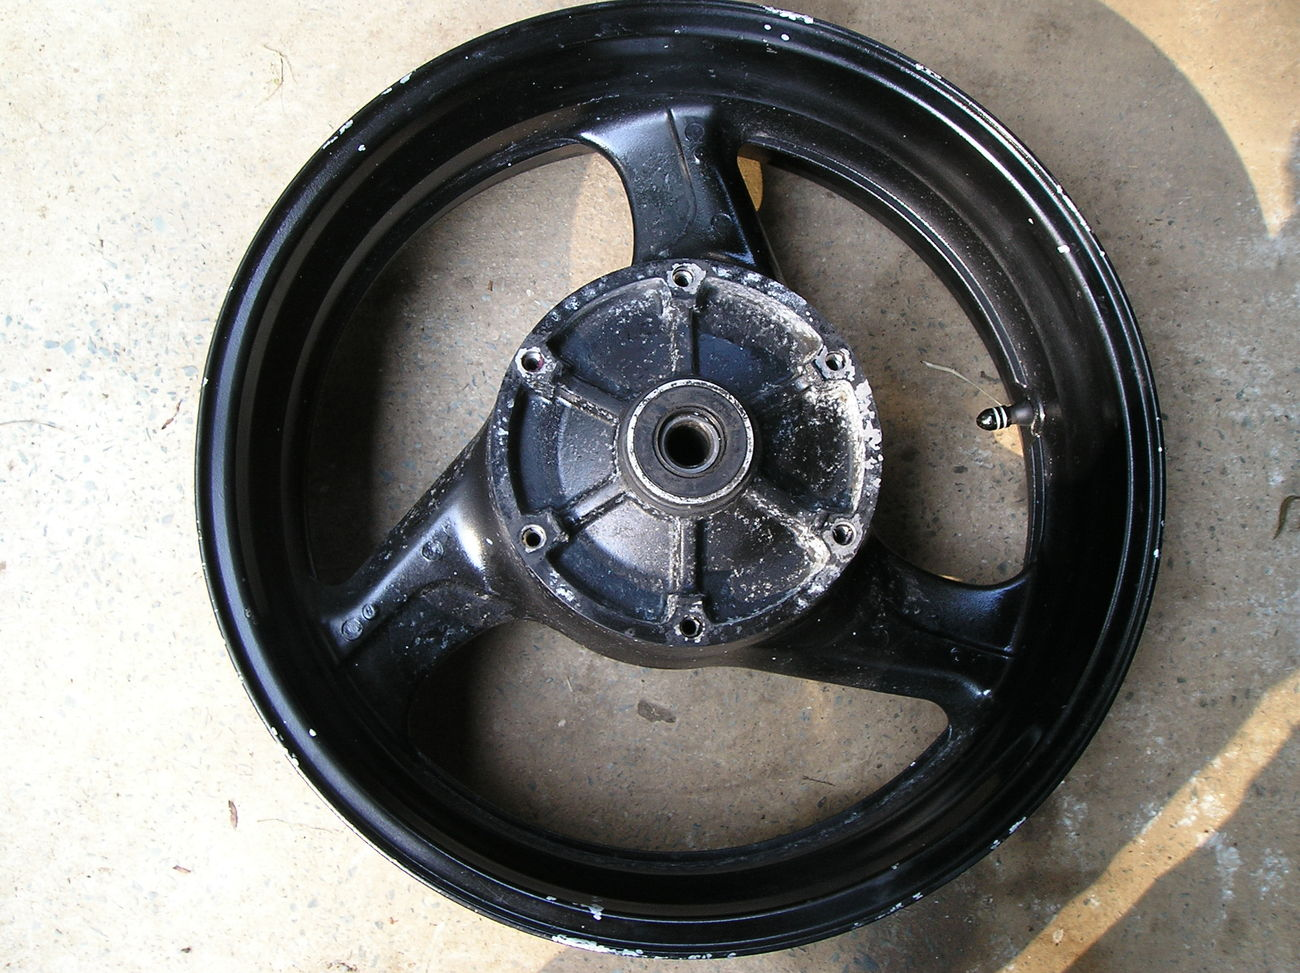 Honda CBR1100XX '97-'01 rear wheel